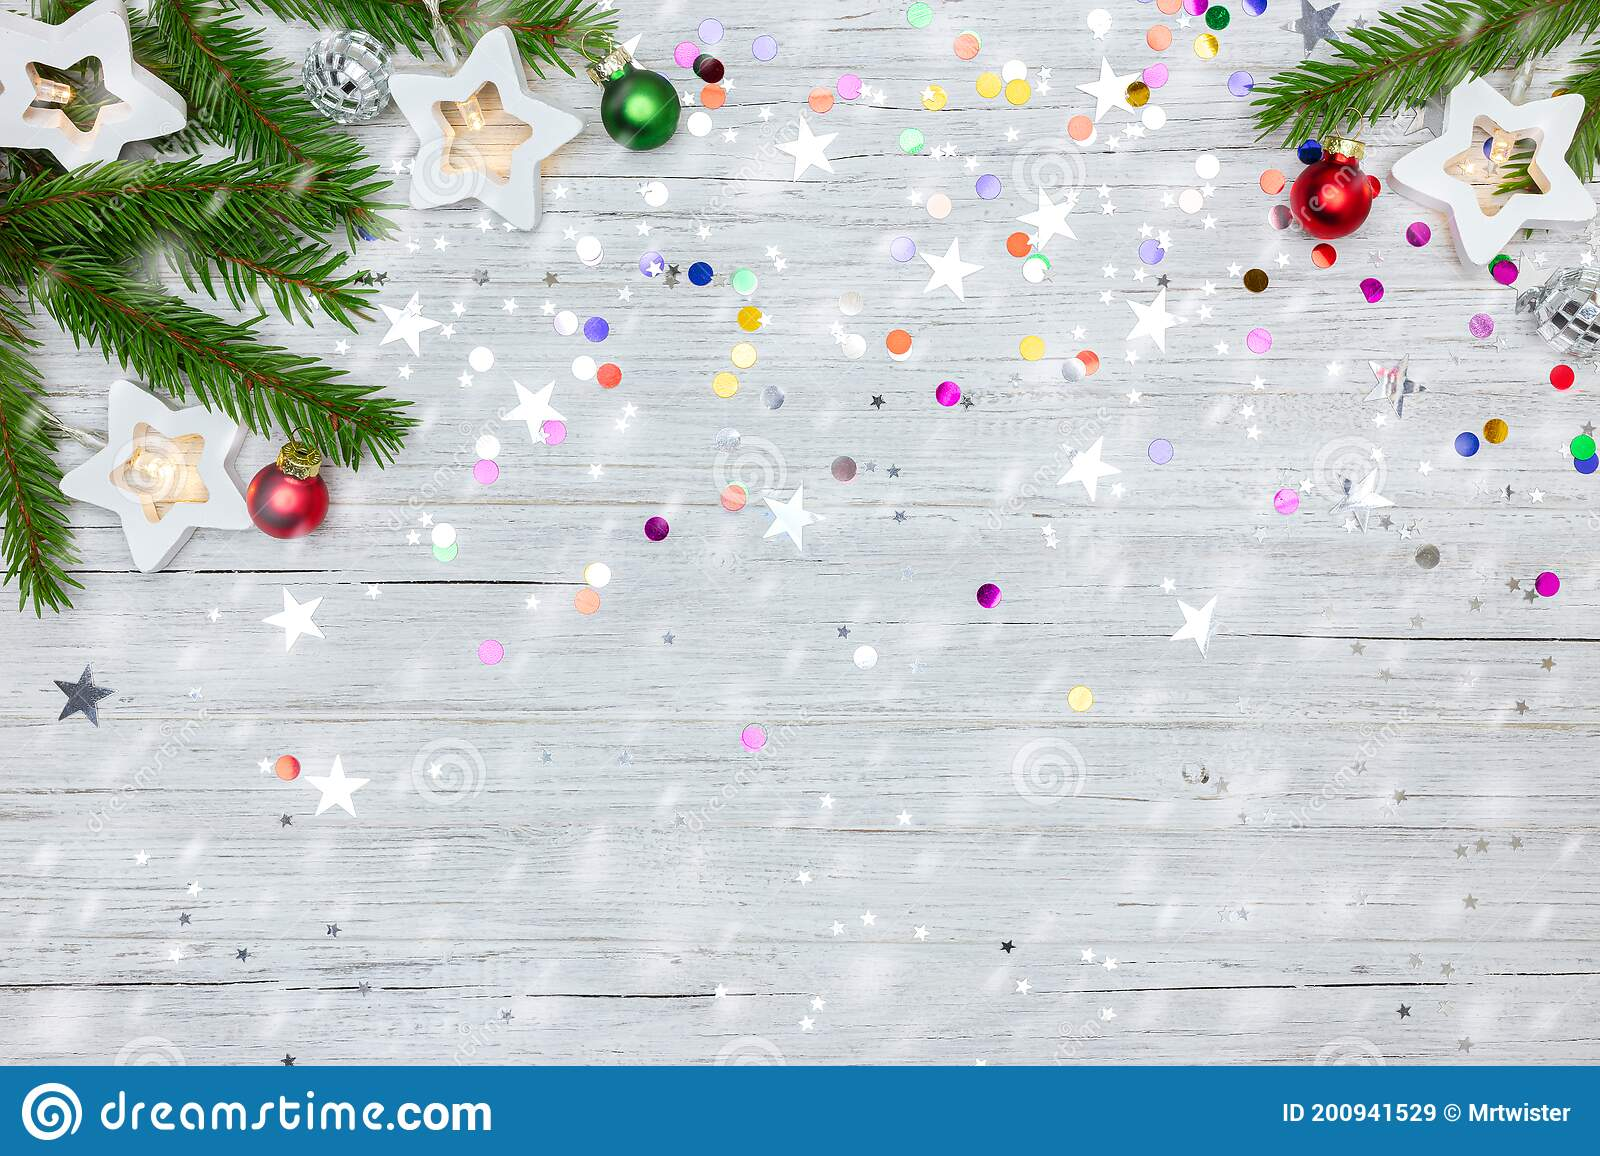 Green Christmas Tree Branch And Star Lights On White Wooden Background With Colorful Confetti Stock Image Image Of Bauble Colorful 200941529